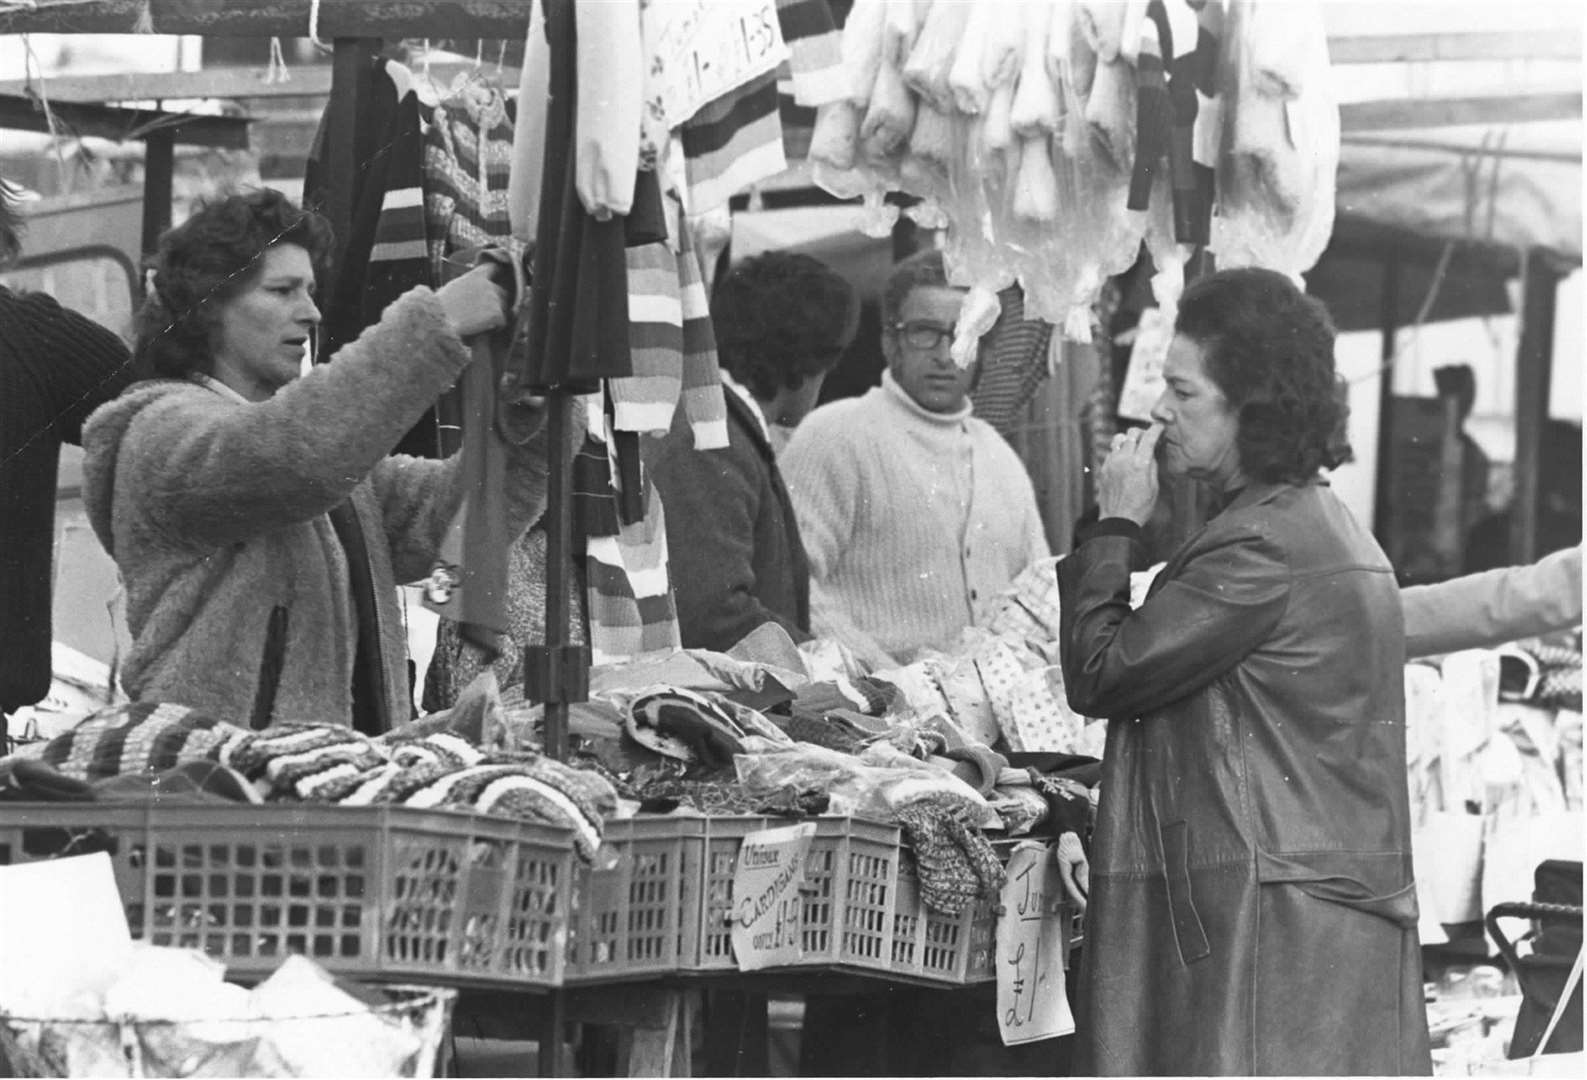 Folkestone market has a long history in the town. Pictured in October 1974